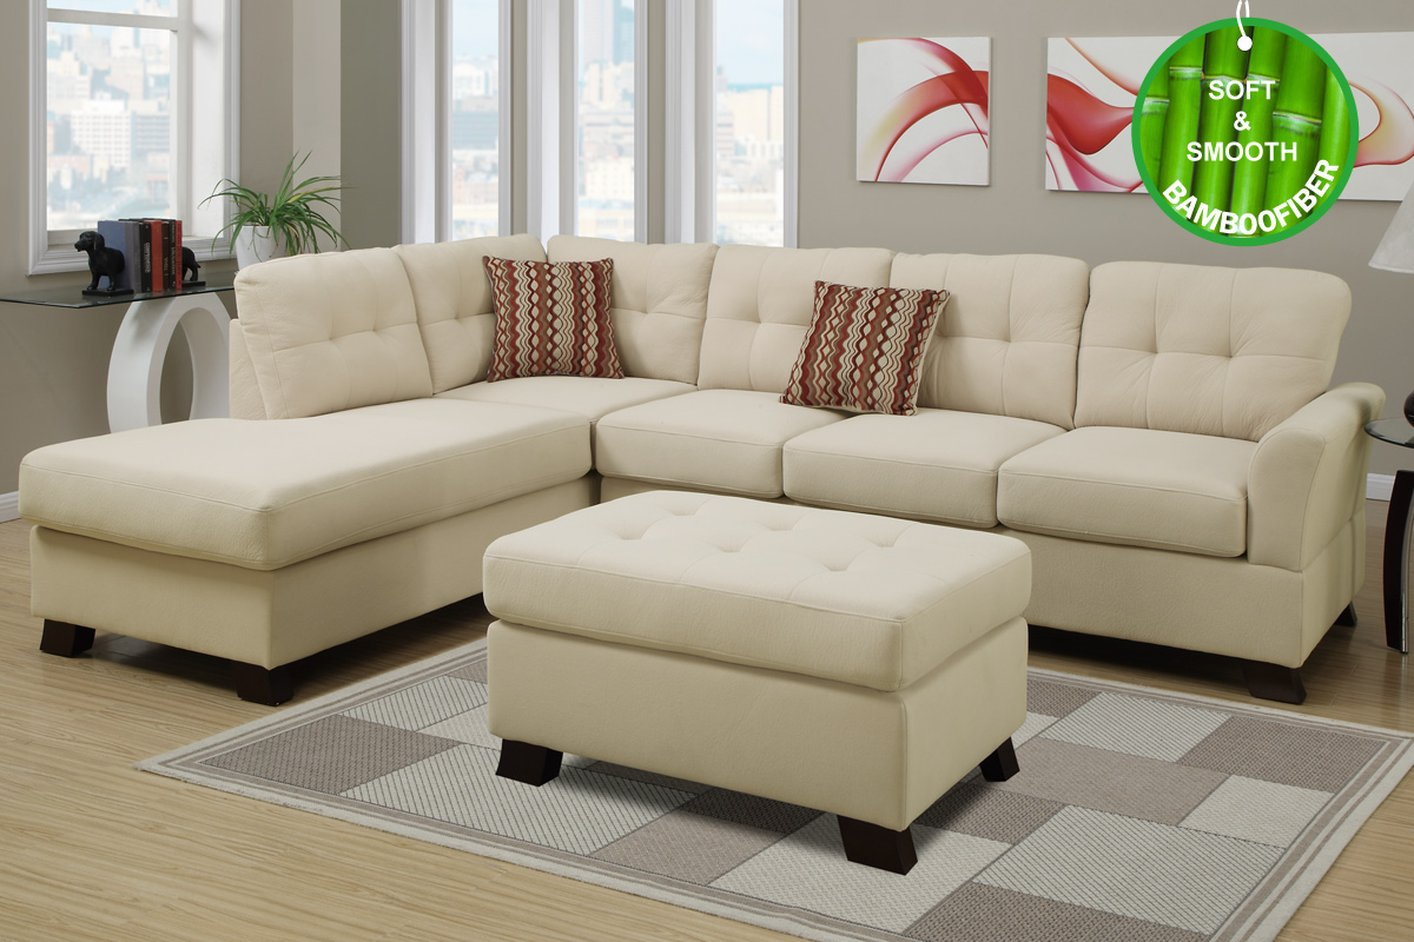 Sofa Beige Beige Fabric Sectional Sofa And Ottoman